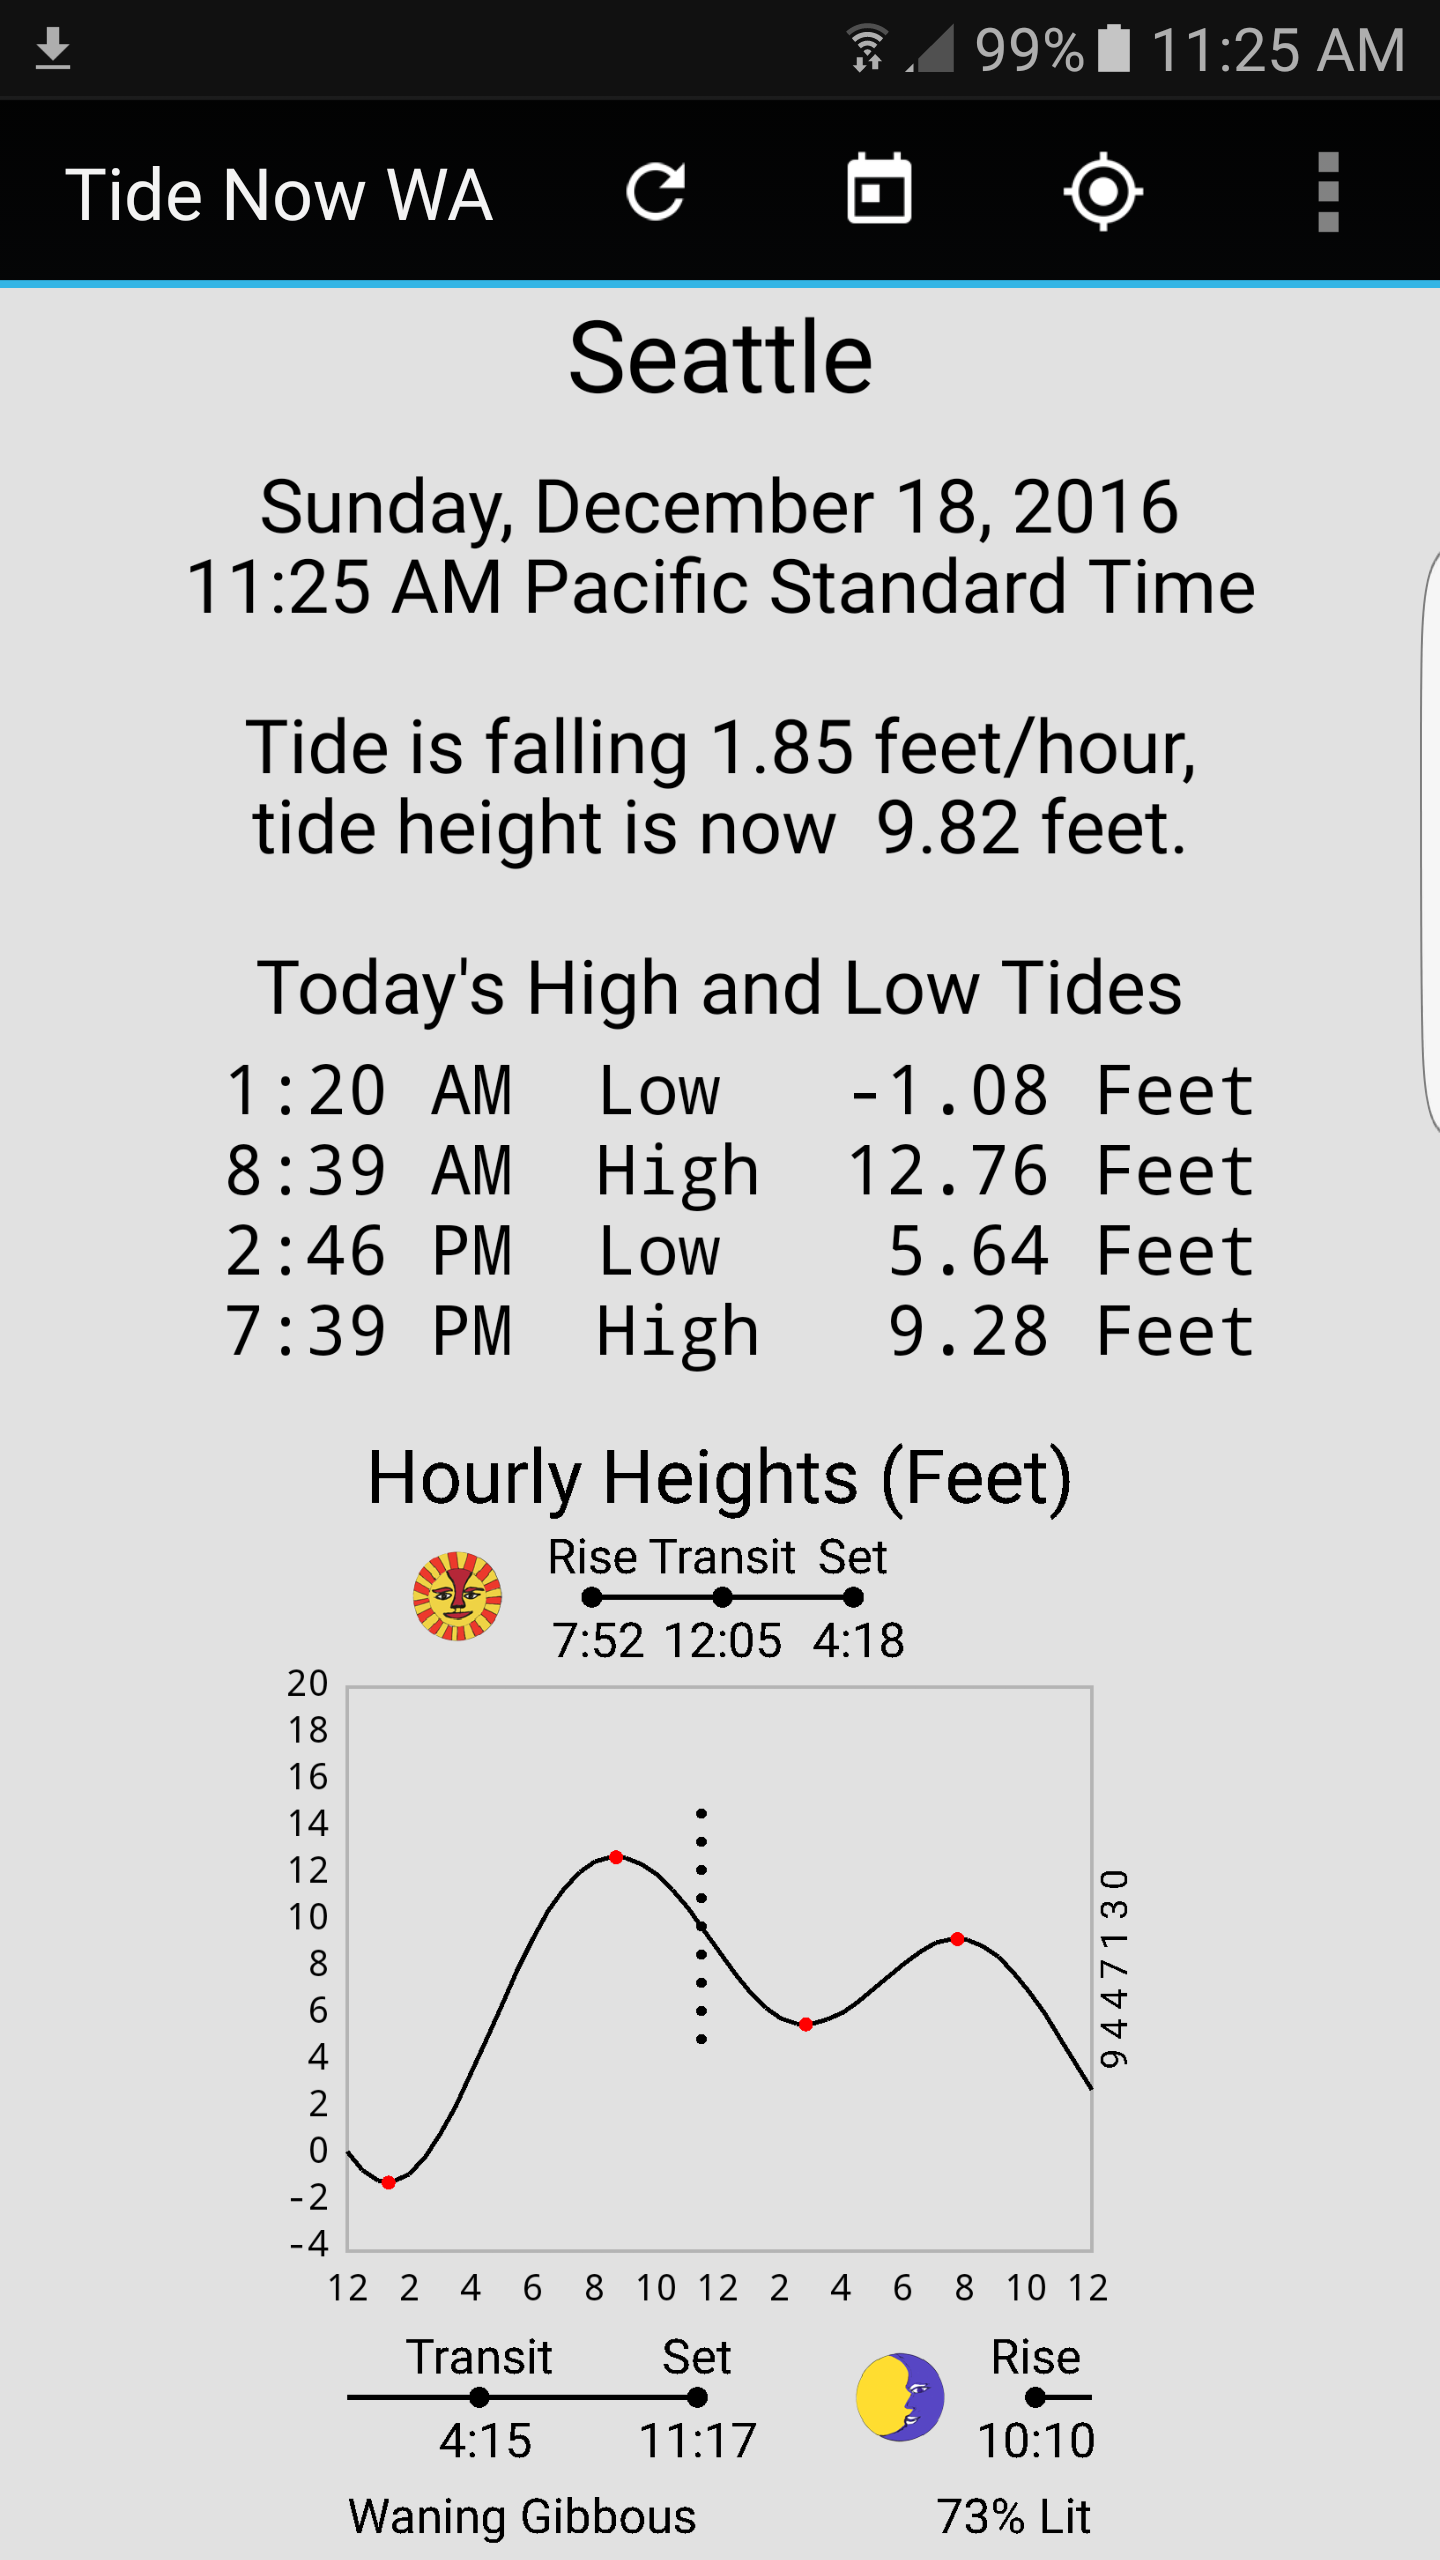 Tide charts nz images free any chart examples southern california tide charts gallery chart design ideas ventura county tide chart image collections free any nvjuhfo Choice Image